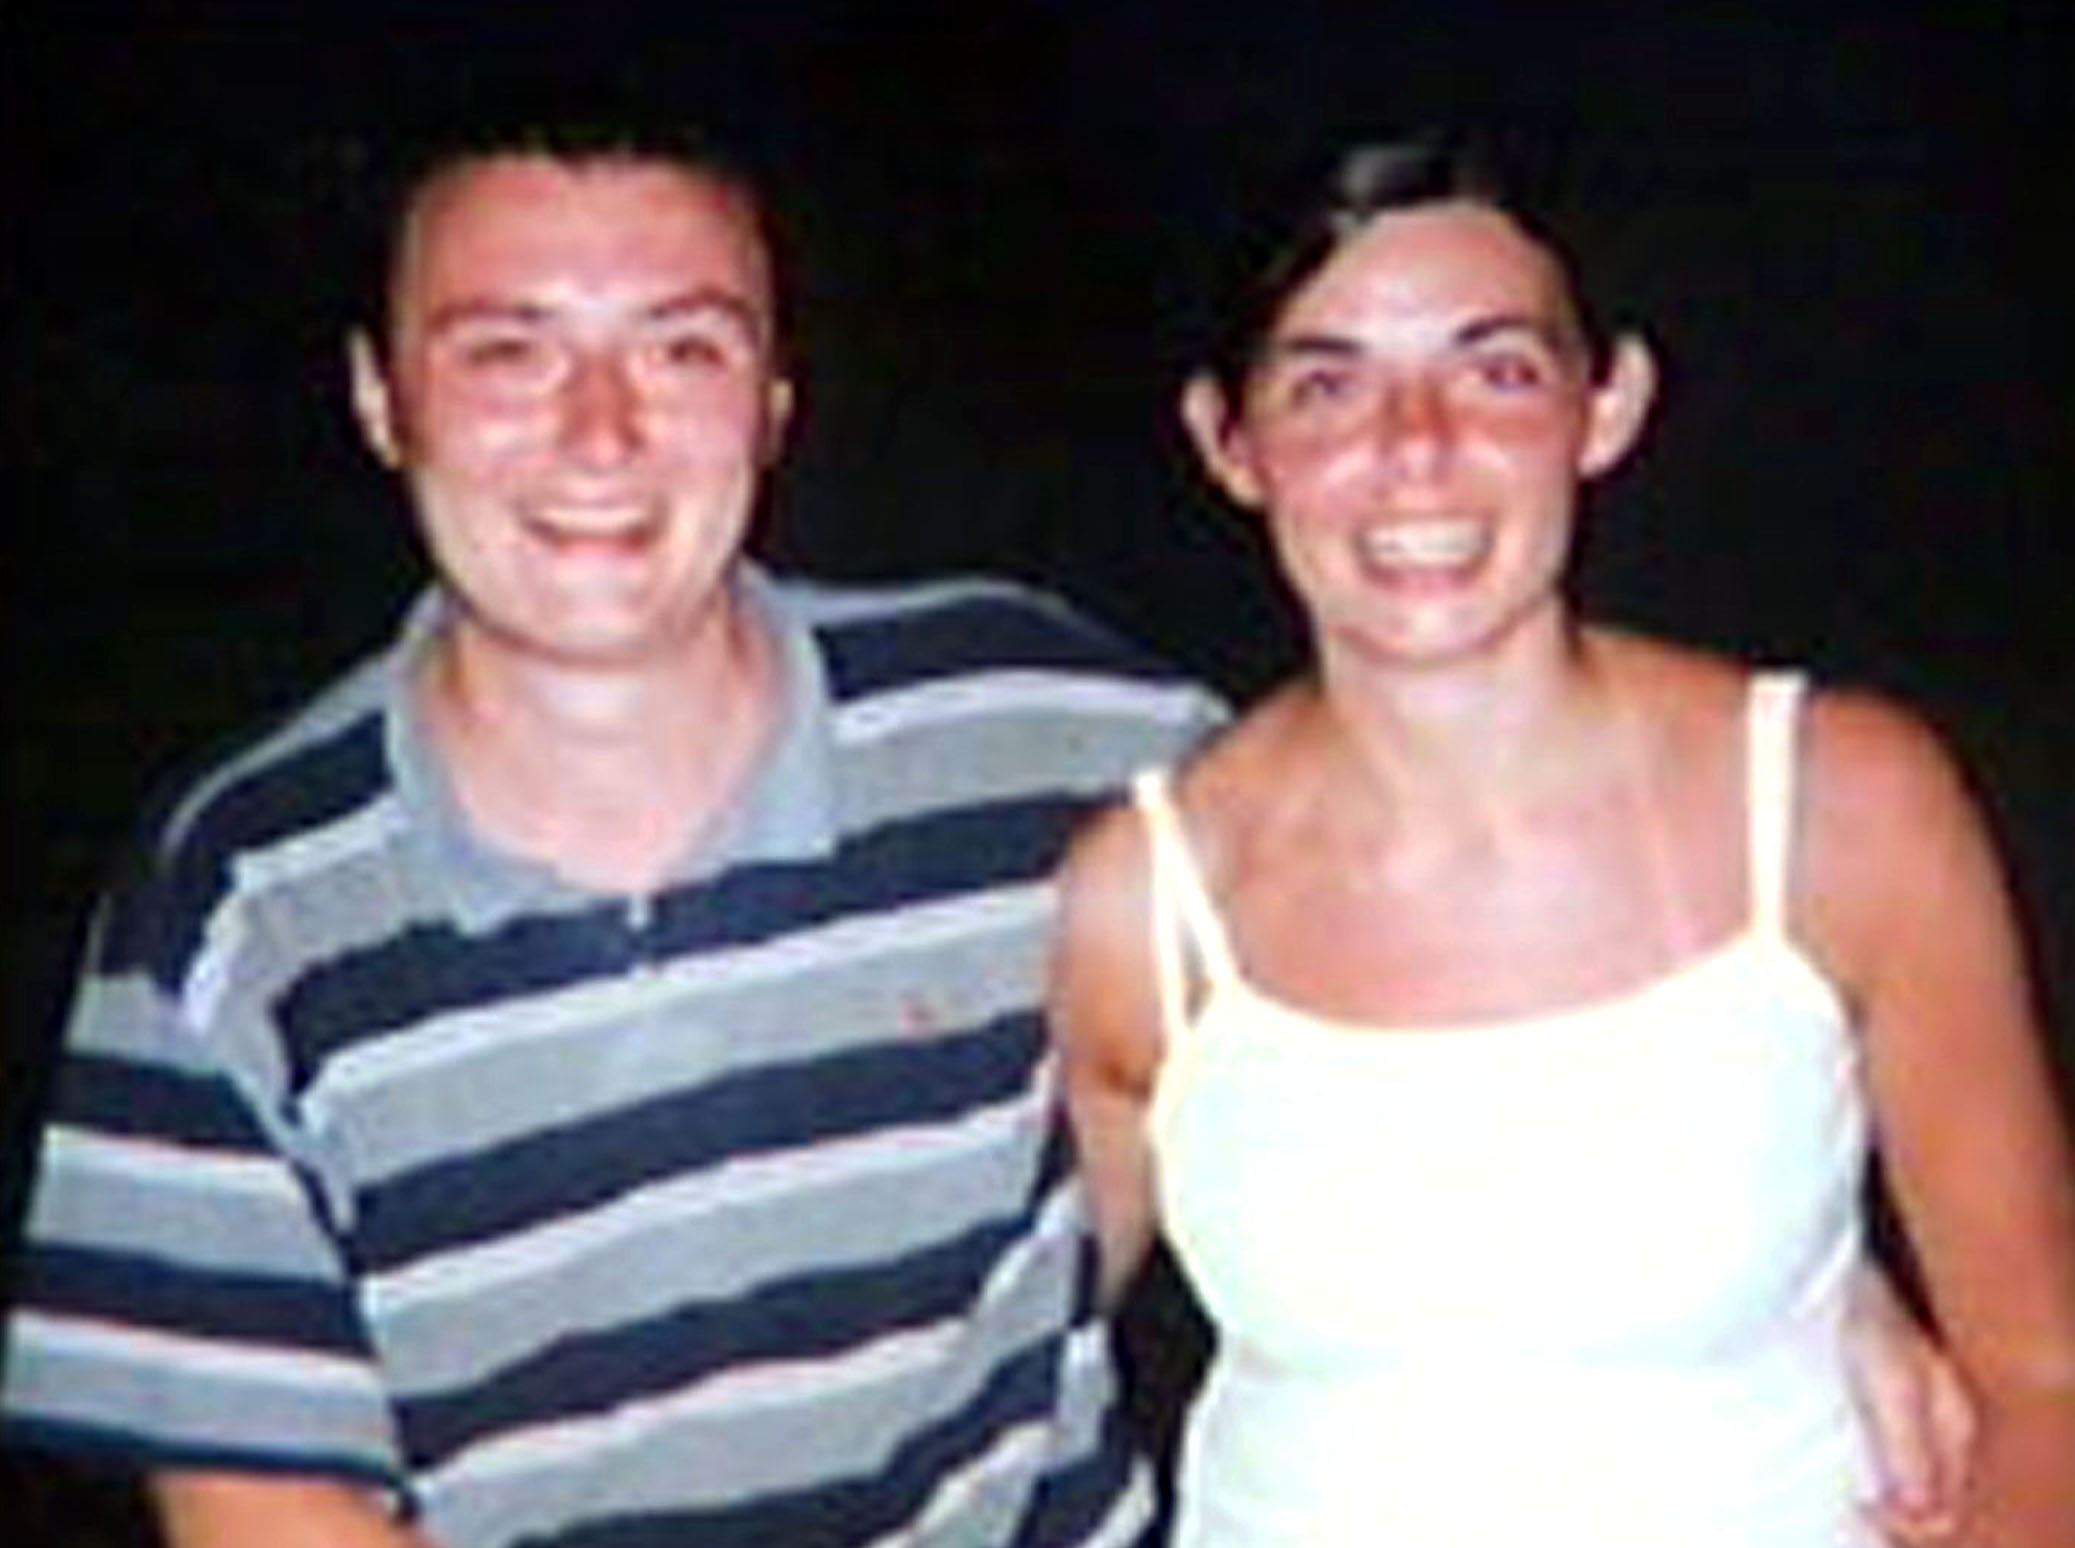 PETER FALCONIO MURDER CASE, AUSTRALIA - 2001